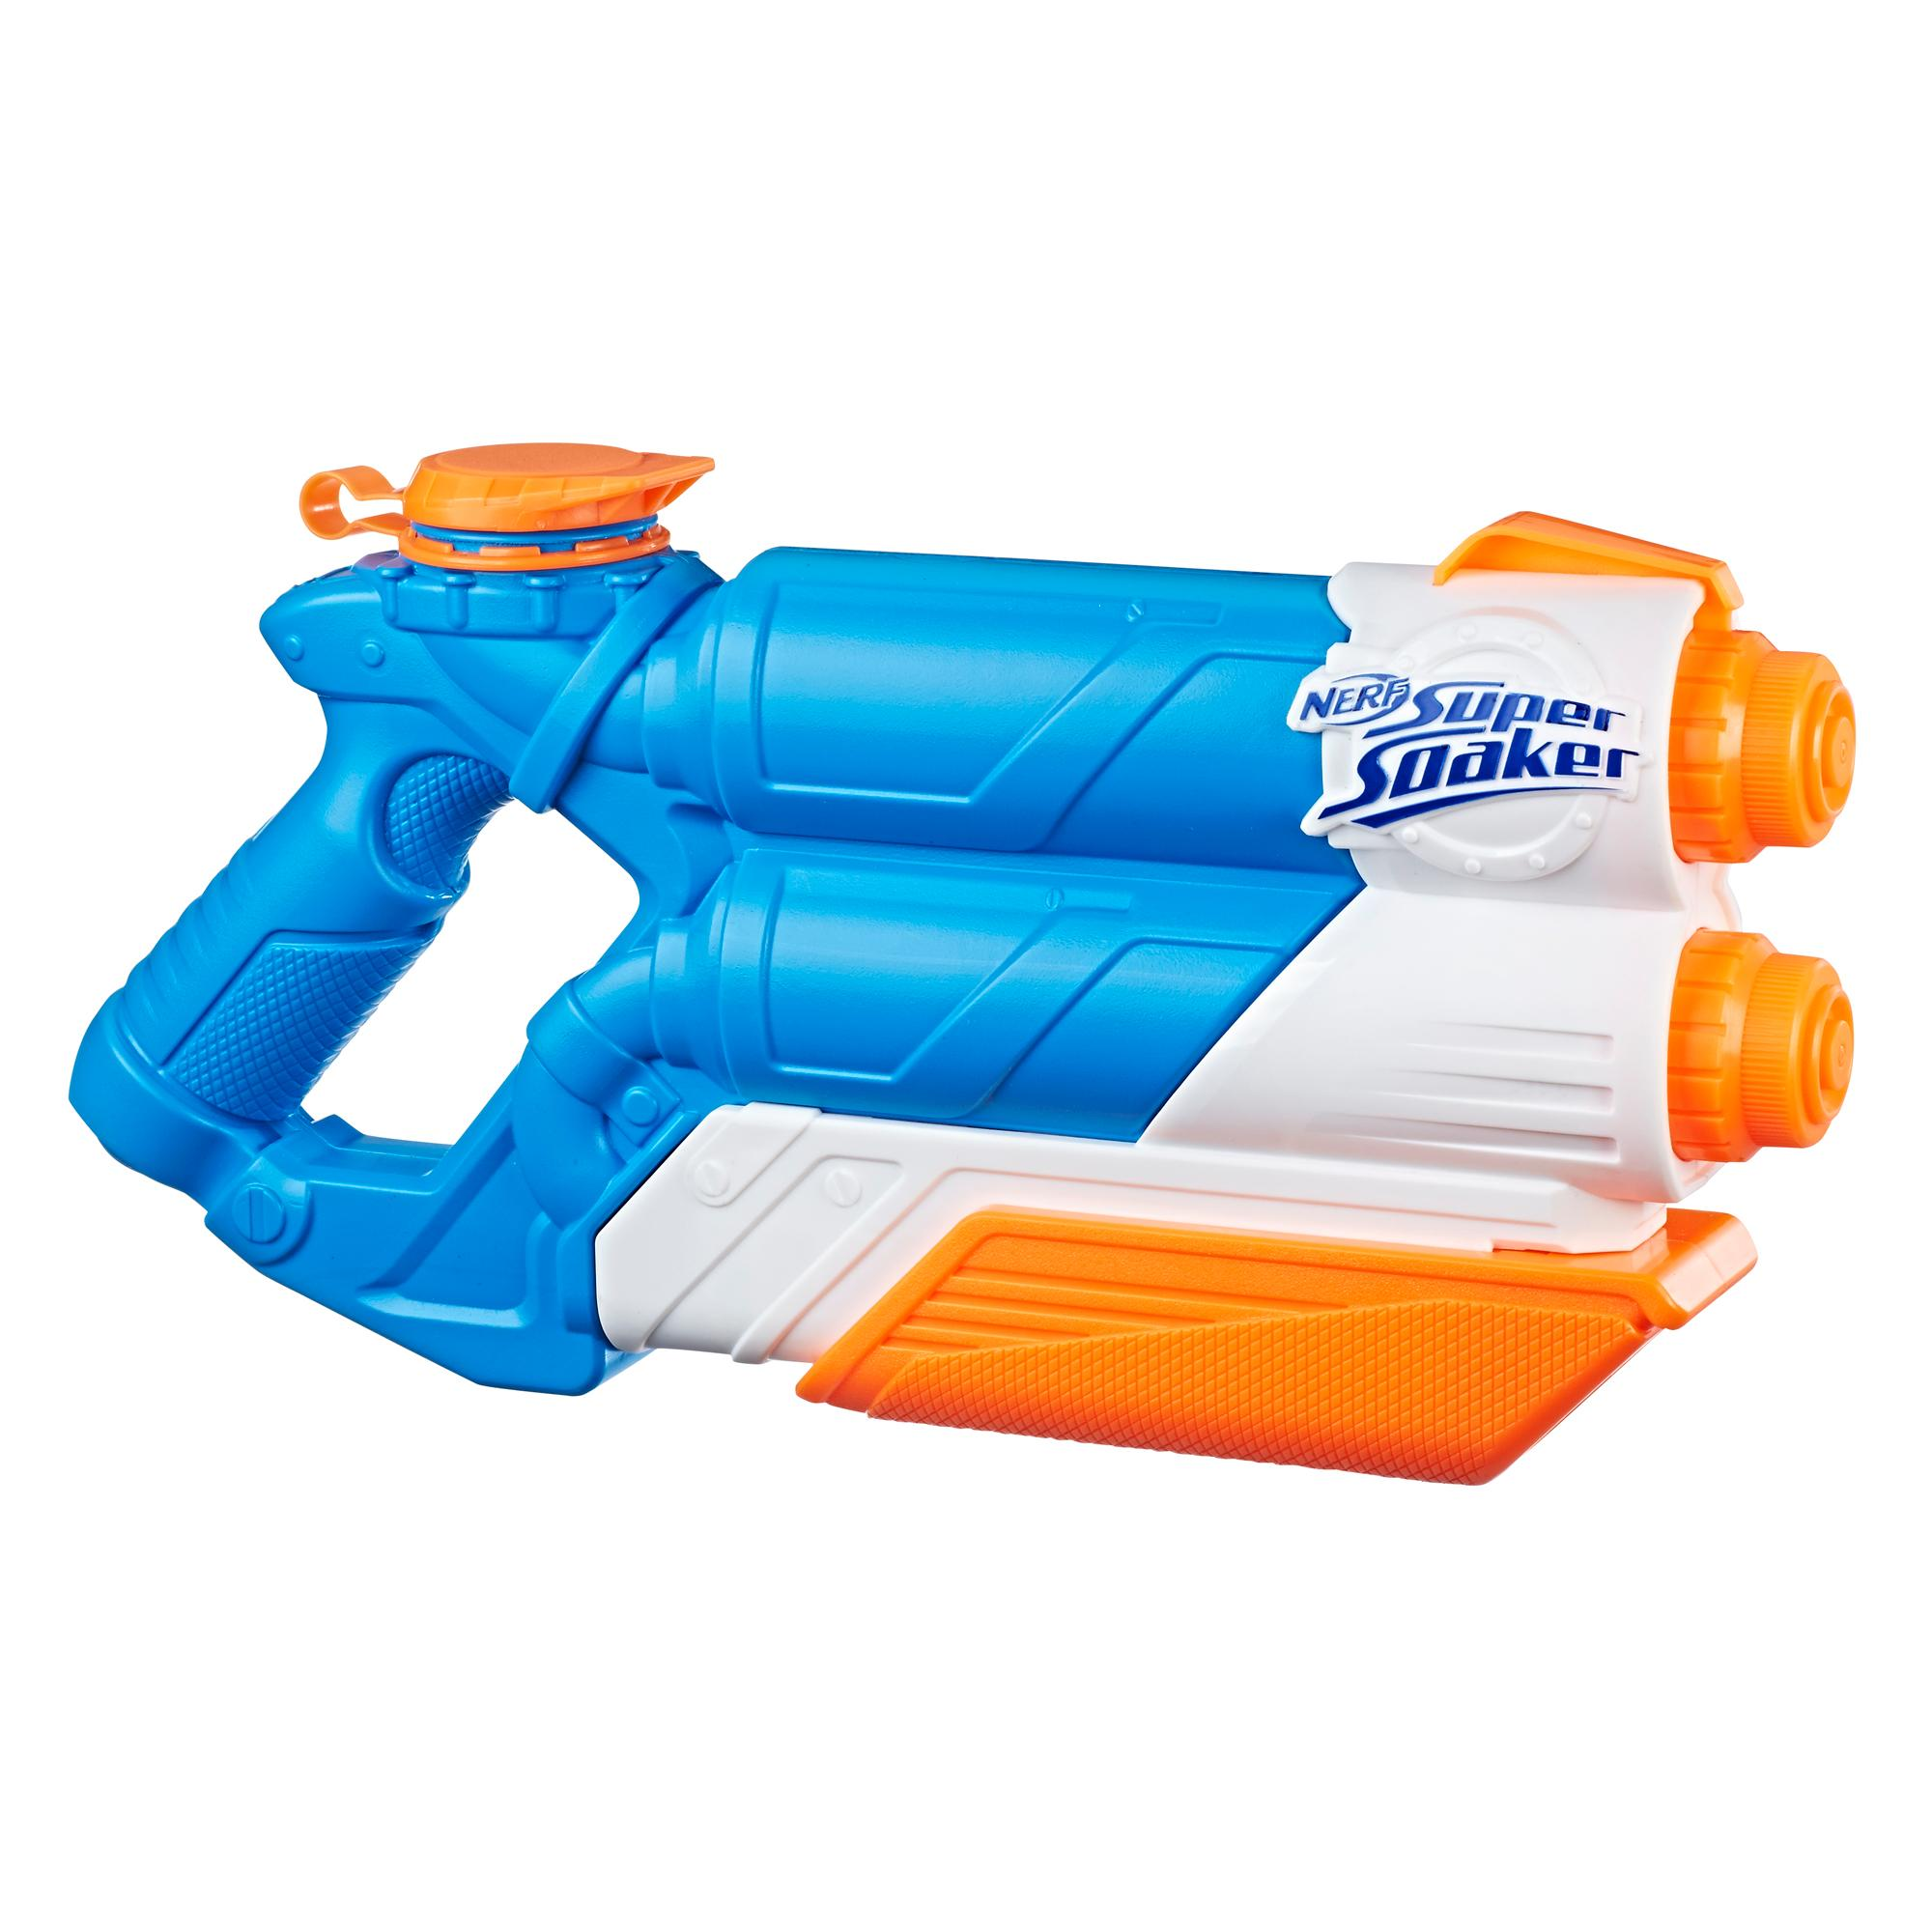 NERF SUPER SOAKER TWIN TIDE